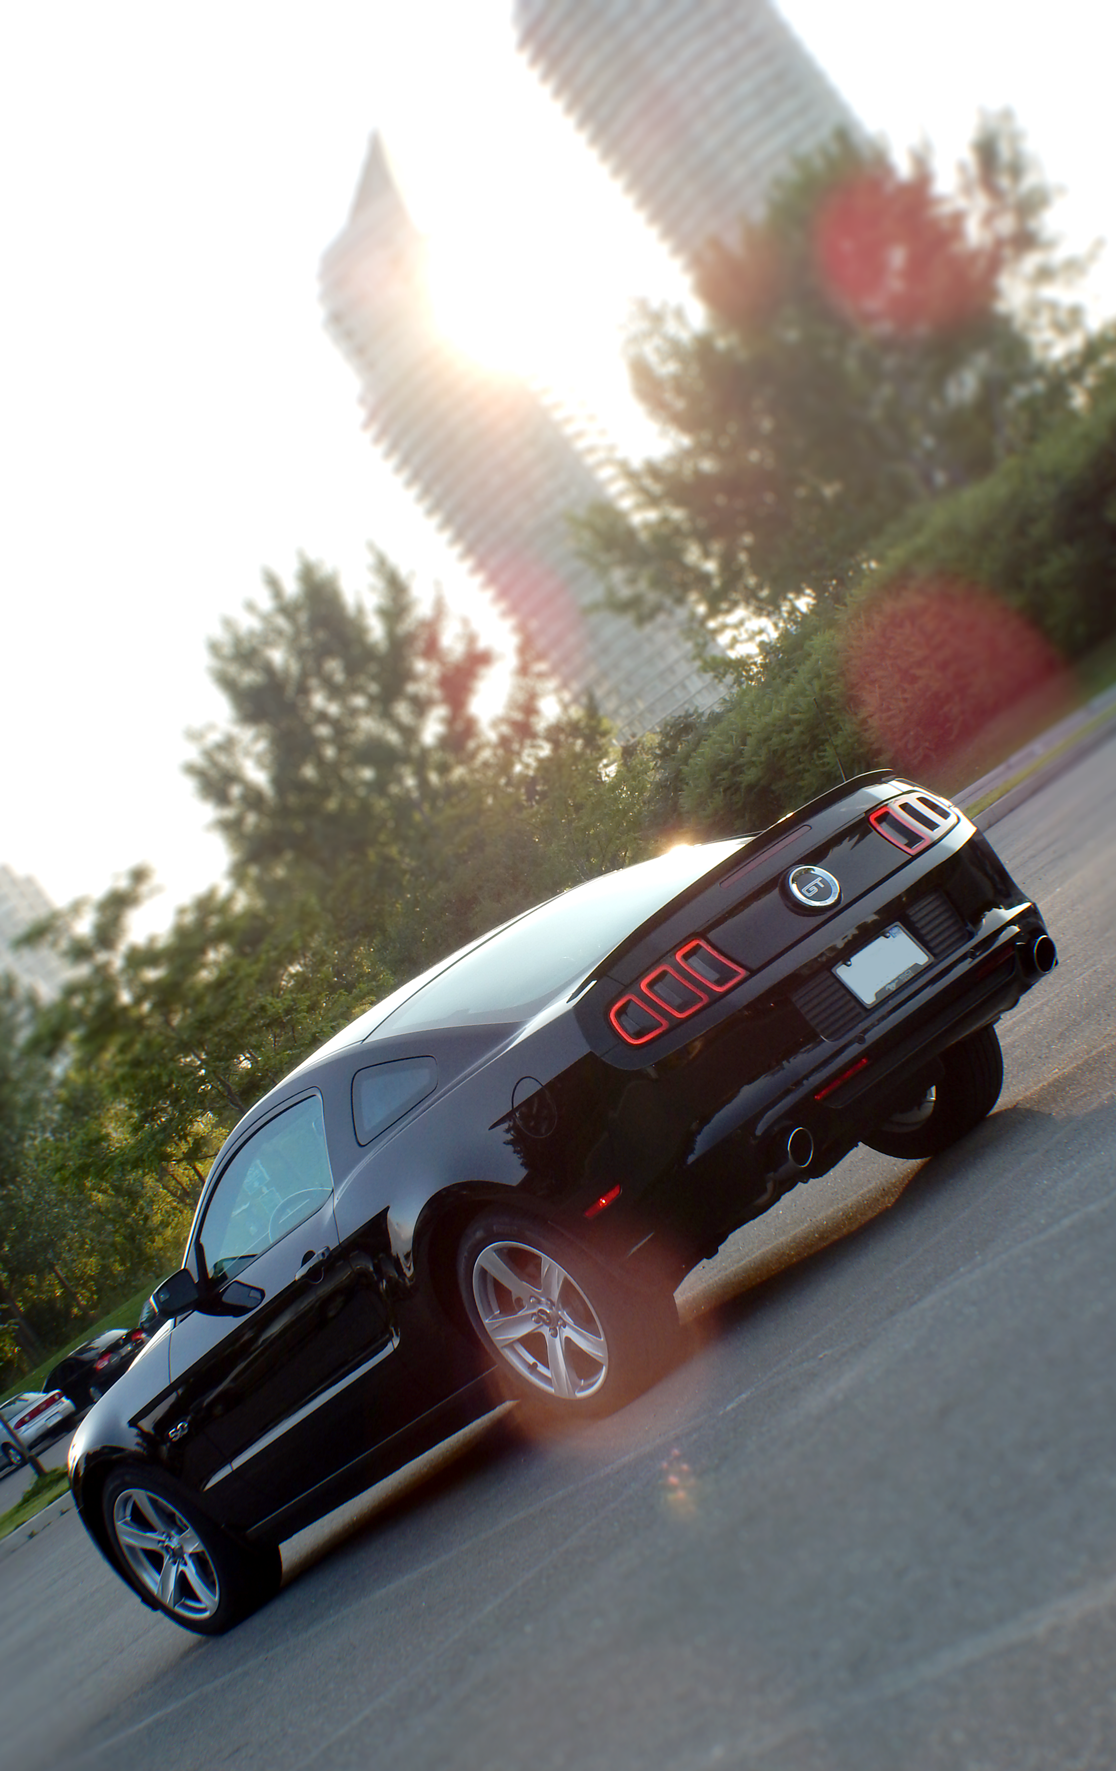 Click image for larger version  Name:Stang01sm.png Views:58 Size:1.92 MB ID:164276